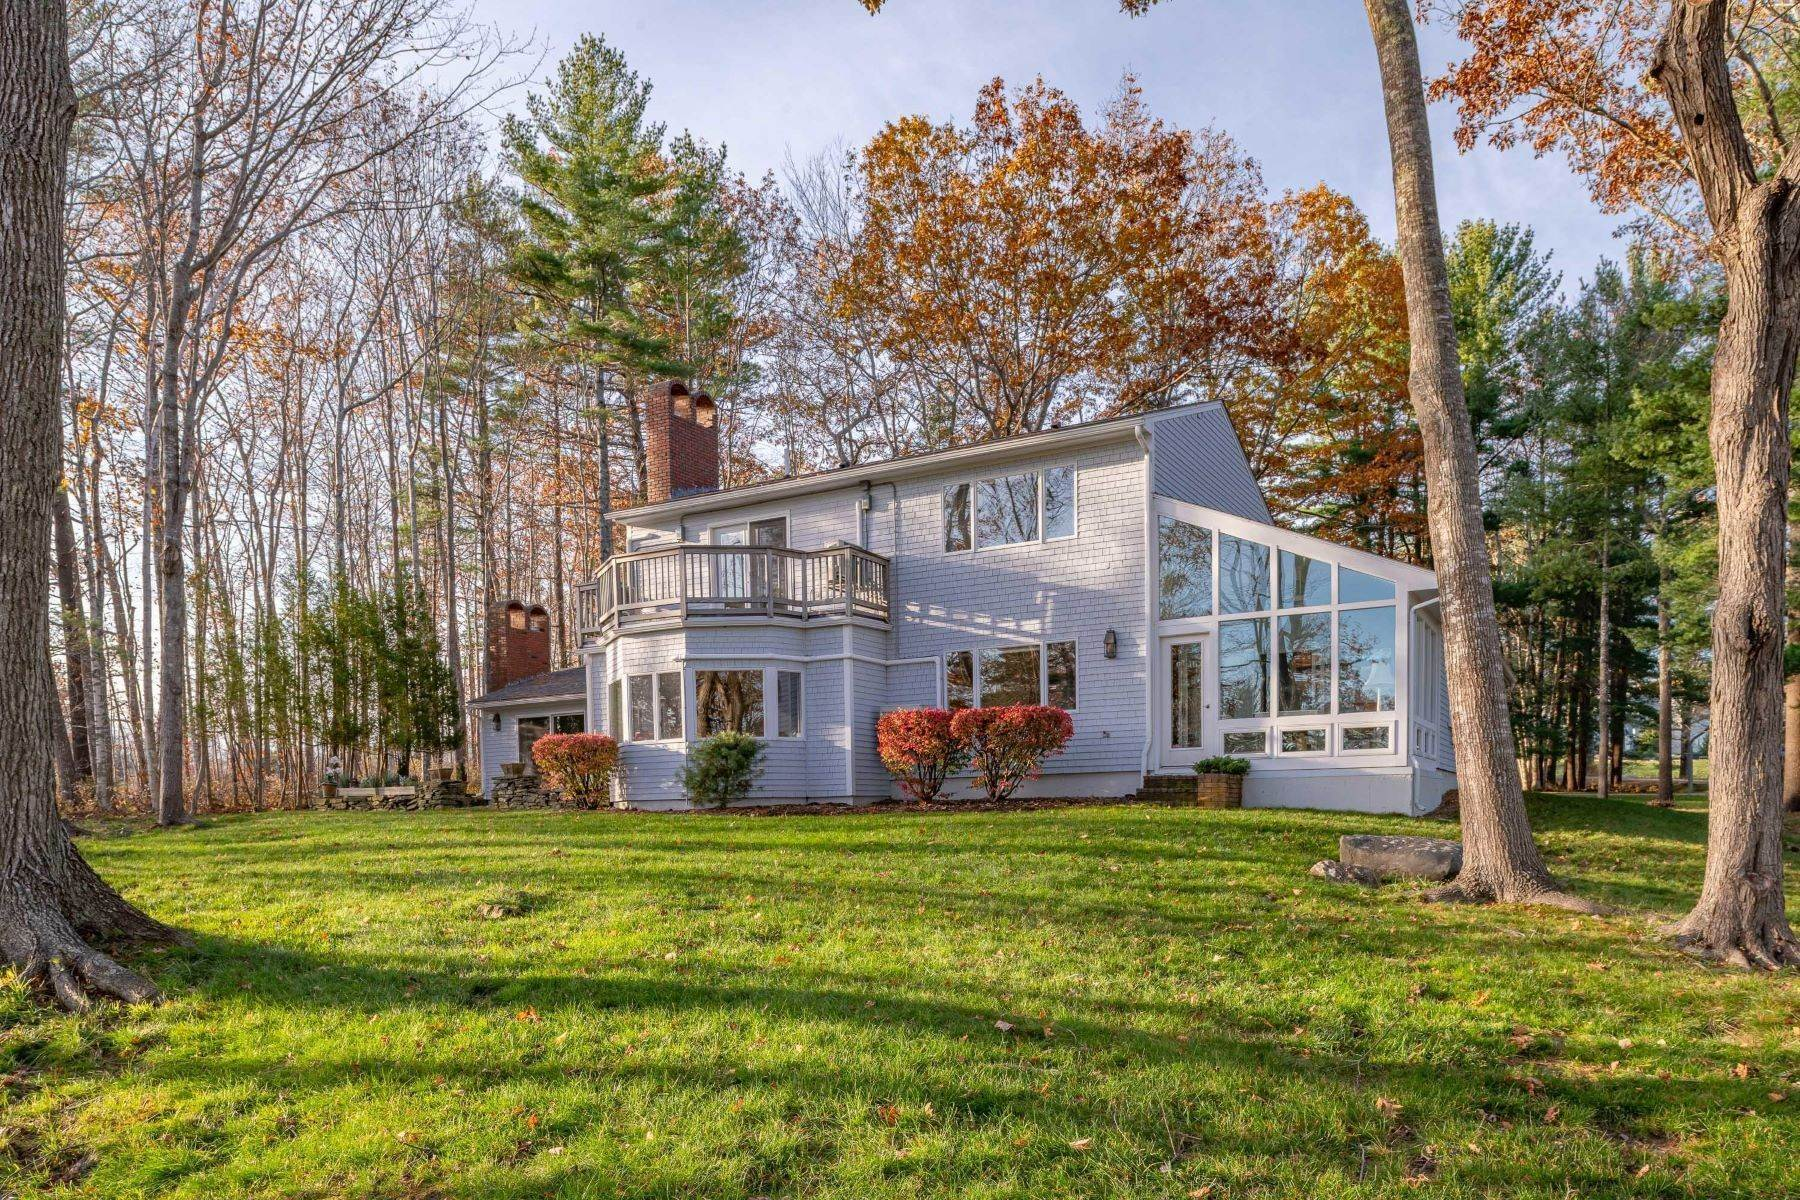 Single Family Homes for Sale at Rockport, ME 04856